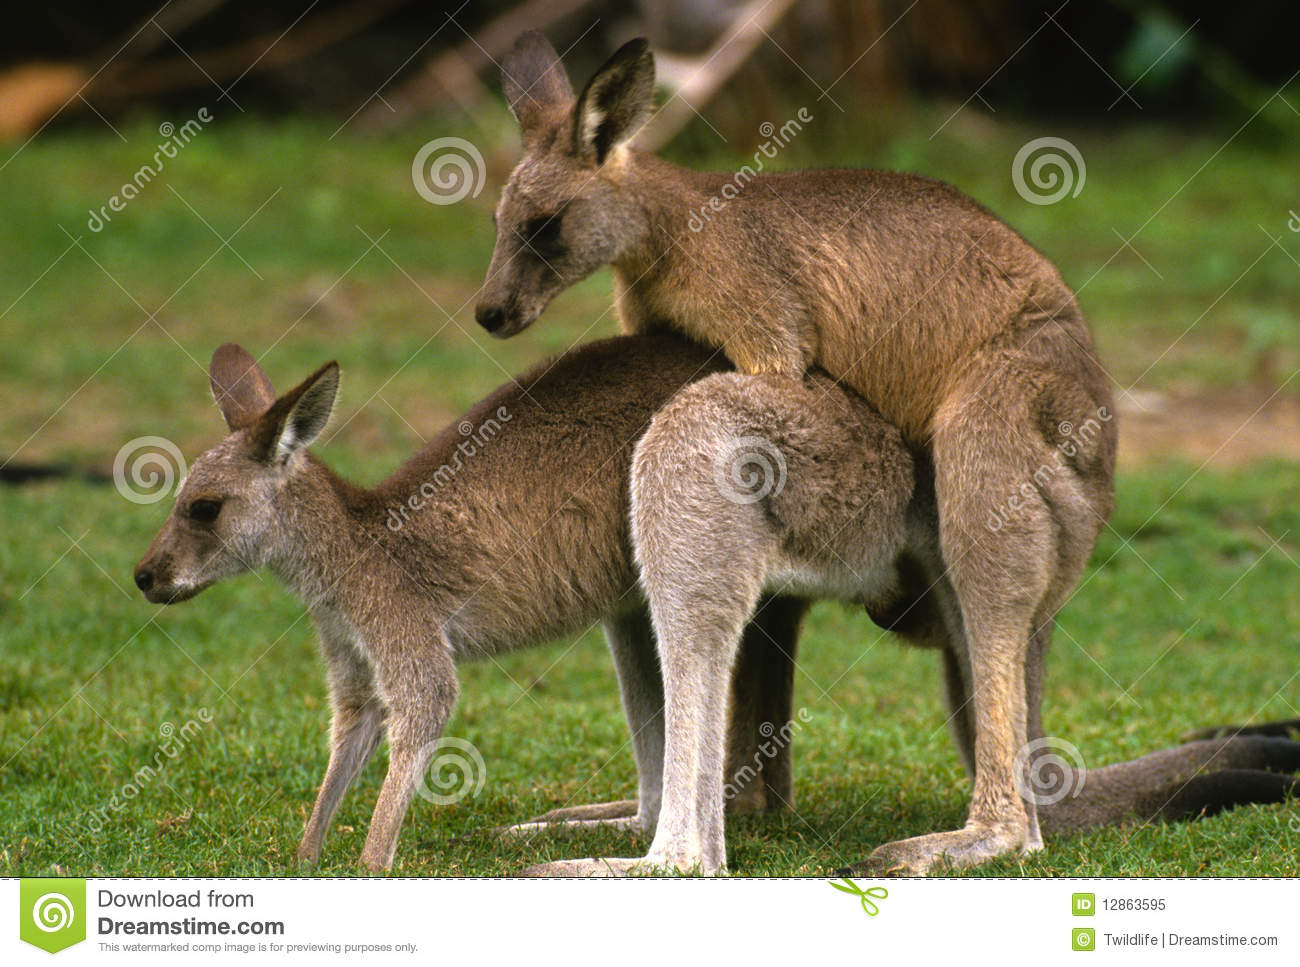 Kangaroos Mating Royalty Free Stock Photo - Image: 12863595